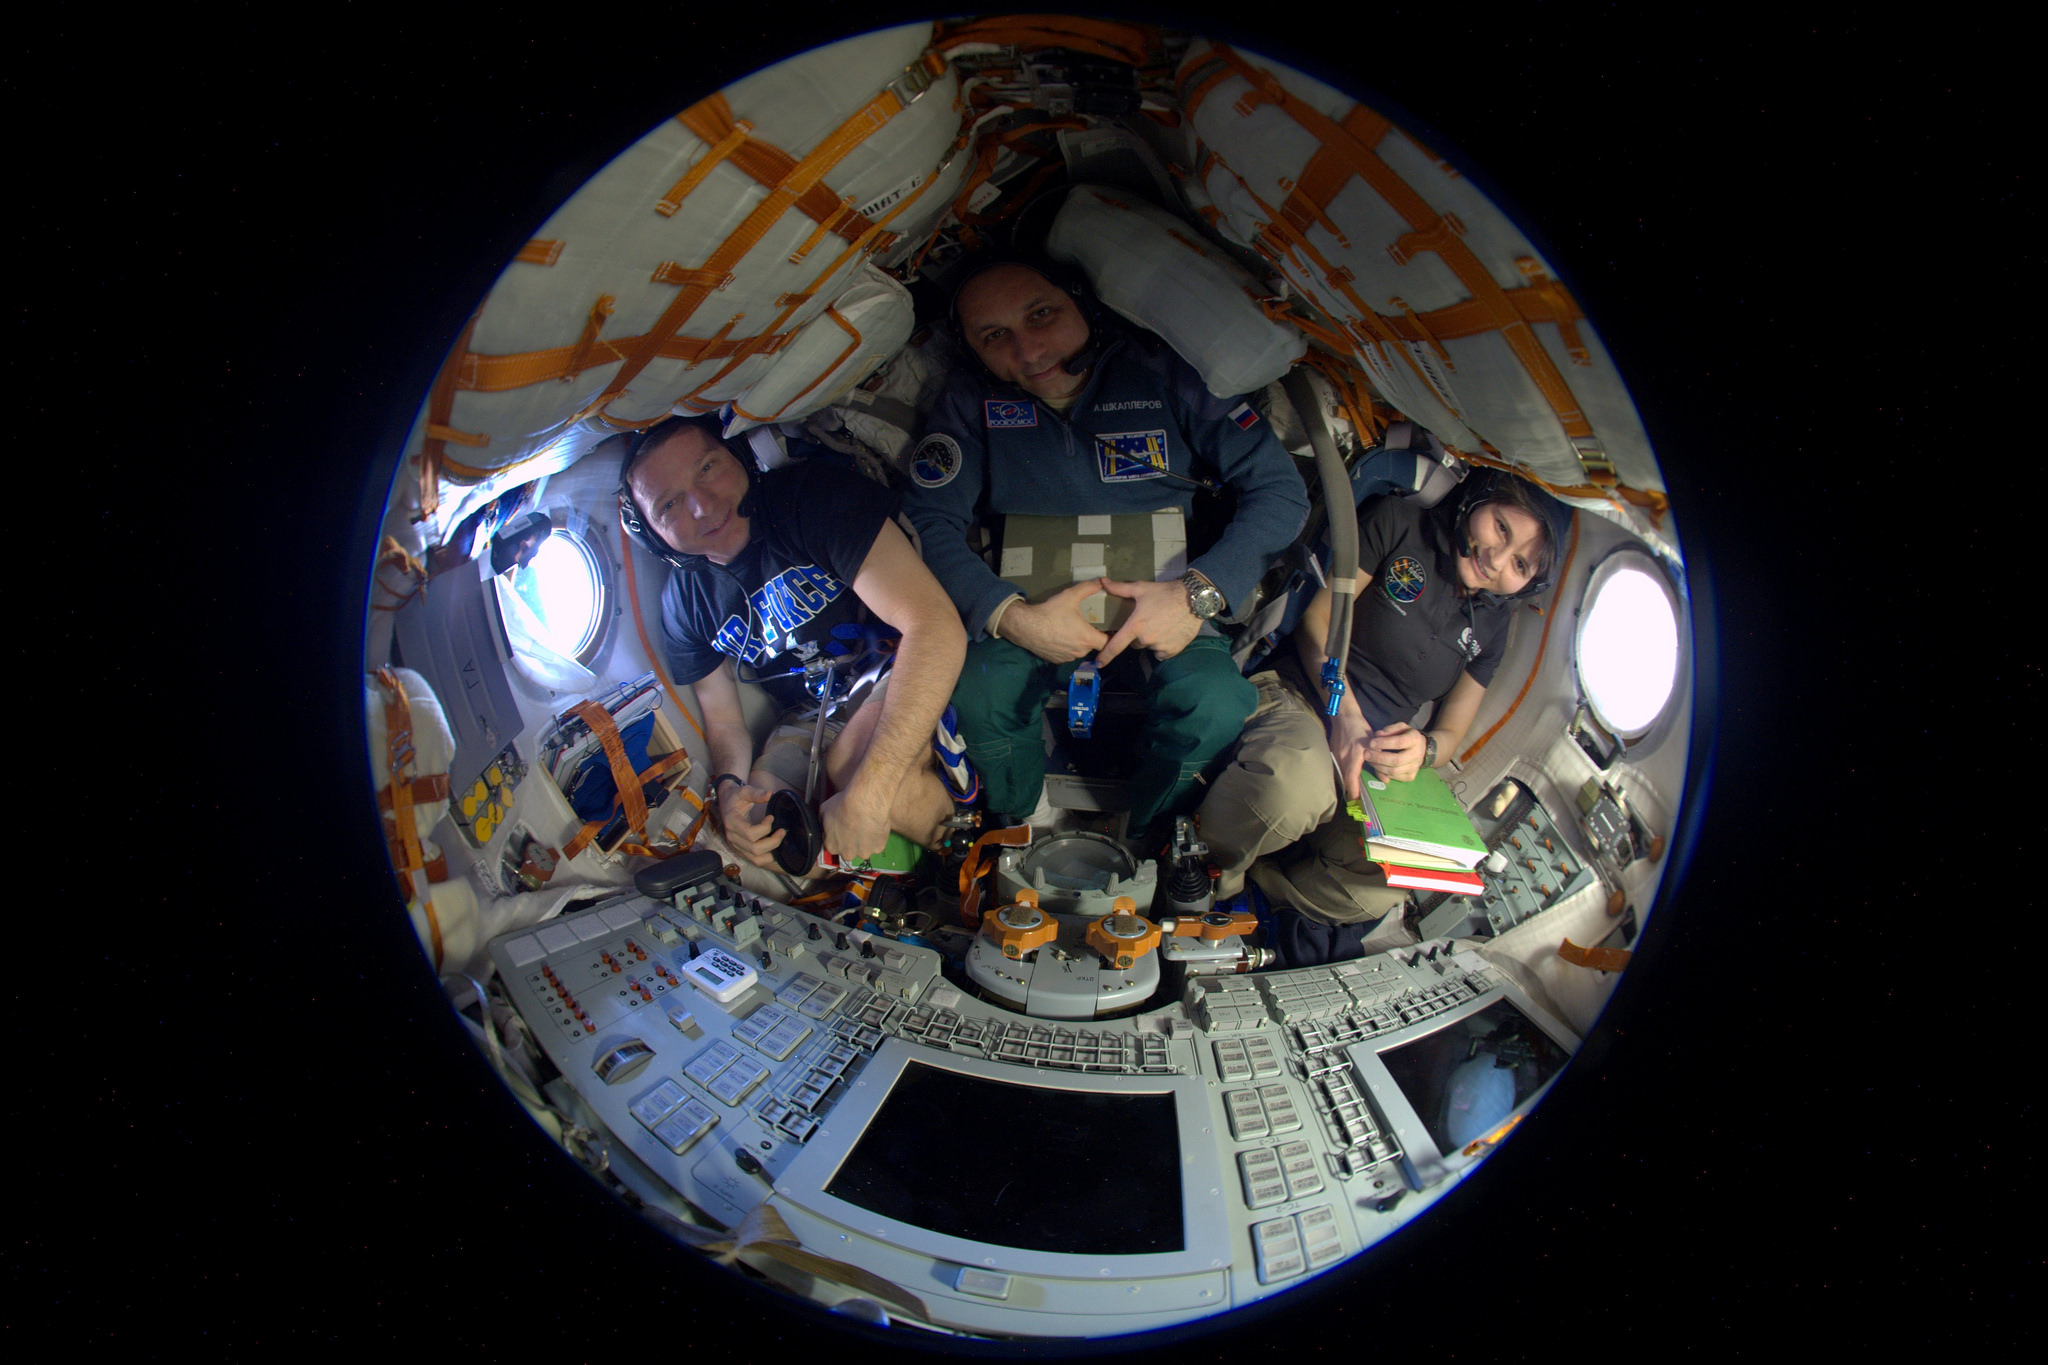 Virts, Shkaplerov and Cristoforetti strapped into their Soyuz landing craft earlier this week for systems tests. Credit: NASA/ESA